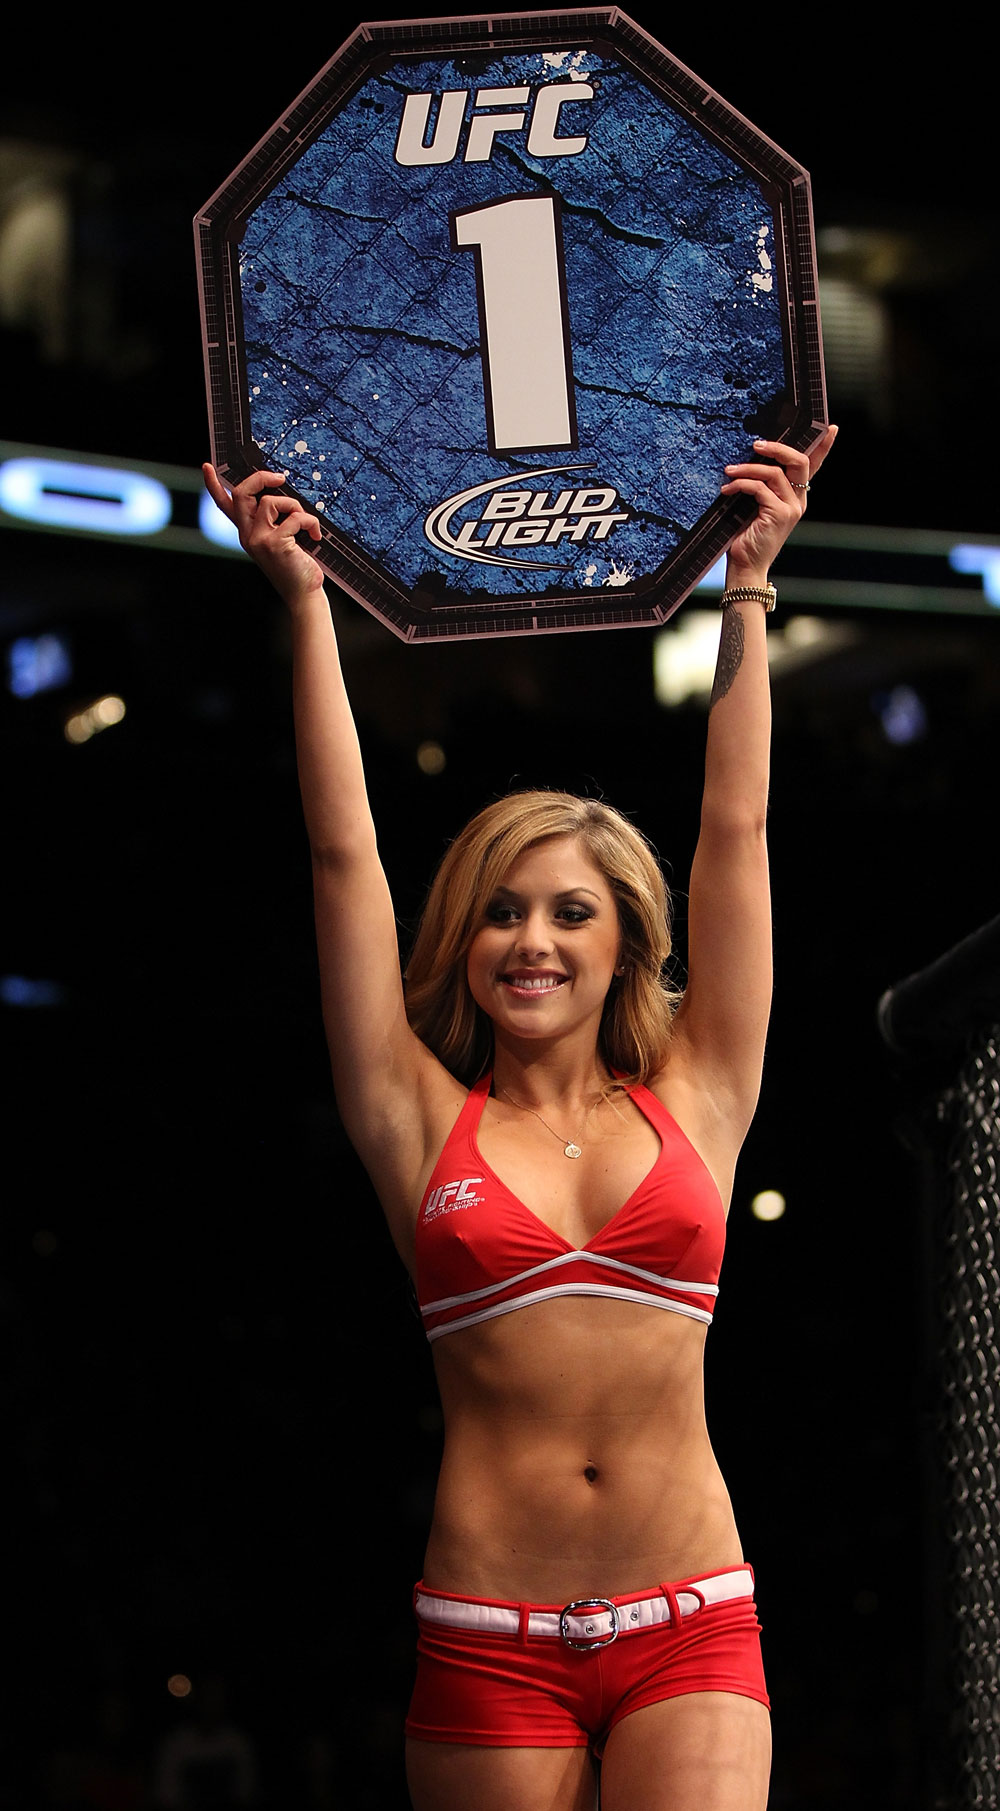 http://media.ufc.tv/photo_galleries/UFConFX_Johnson_v_McCall/13_UFConFX_01.jpg